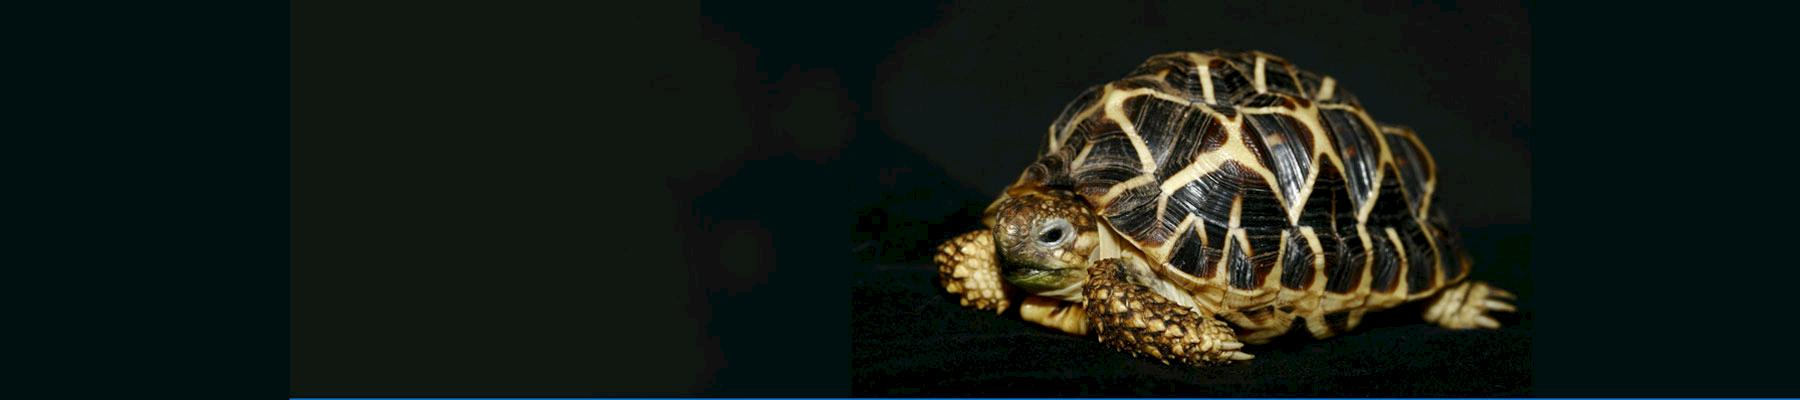 Indian Star Tortoise © Chris R Shepherd / TRAFFIC